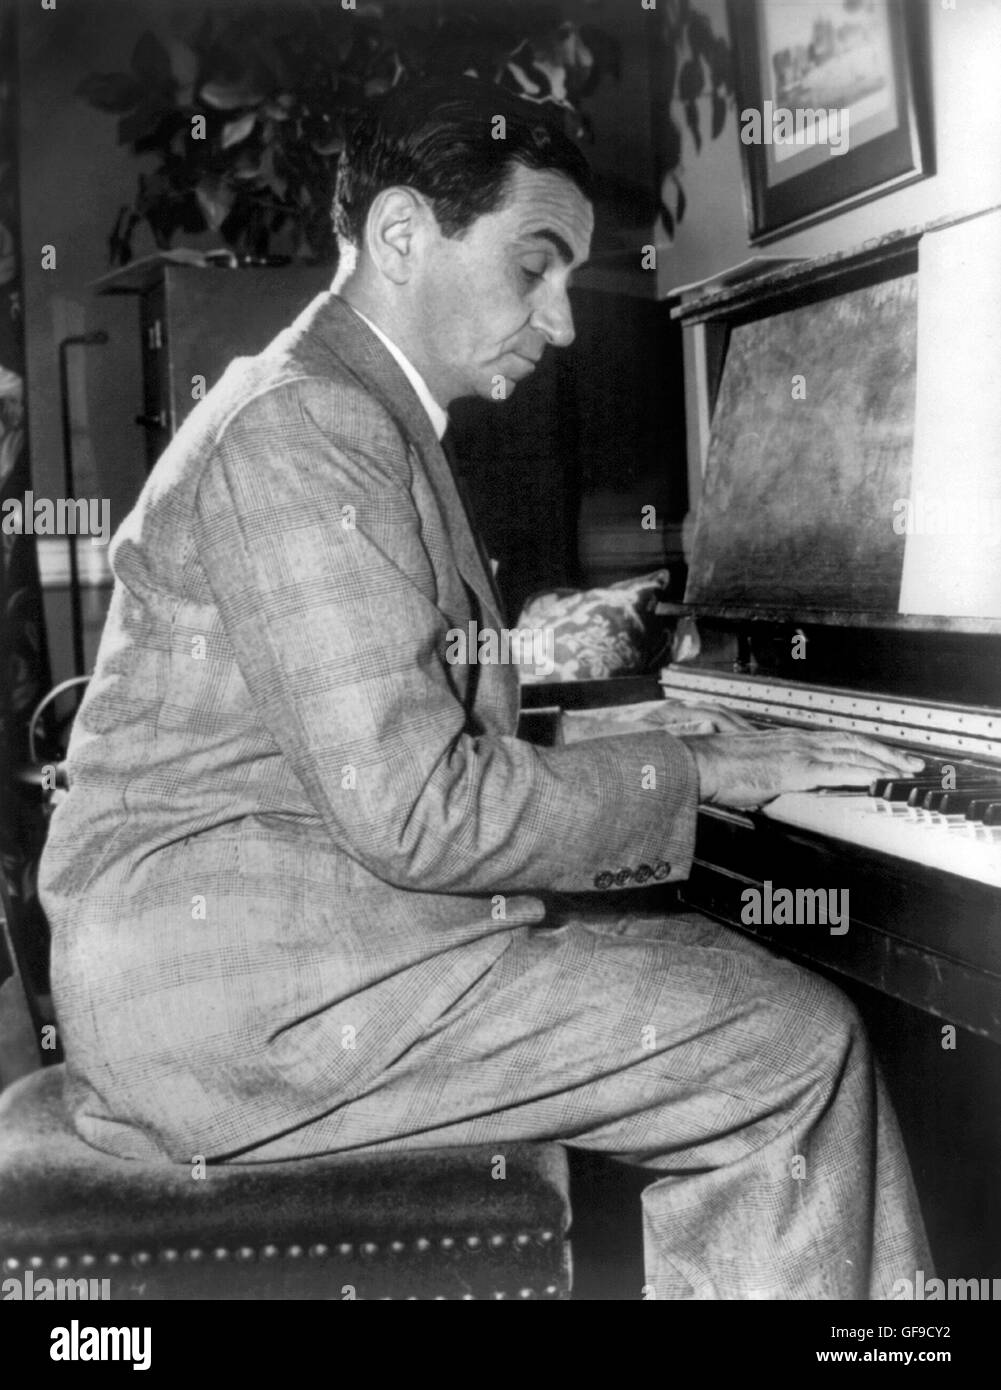 Irving Berlin playing the piano. Portrait of the American composer and lyricist, Irving Berlin (1888-1989) c.1948. - Stock Image